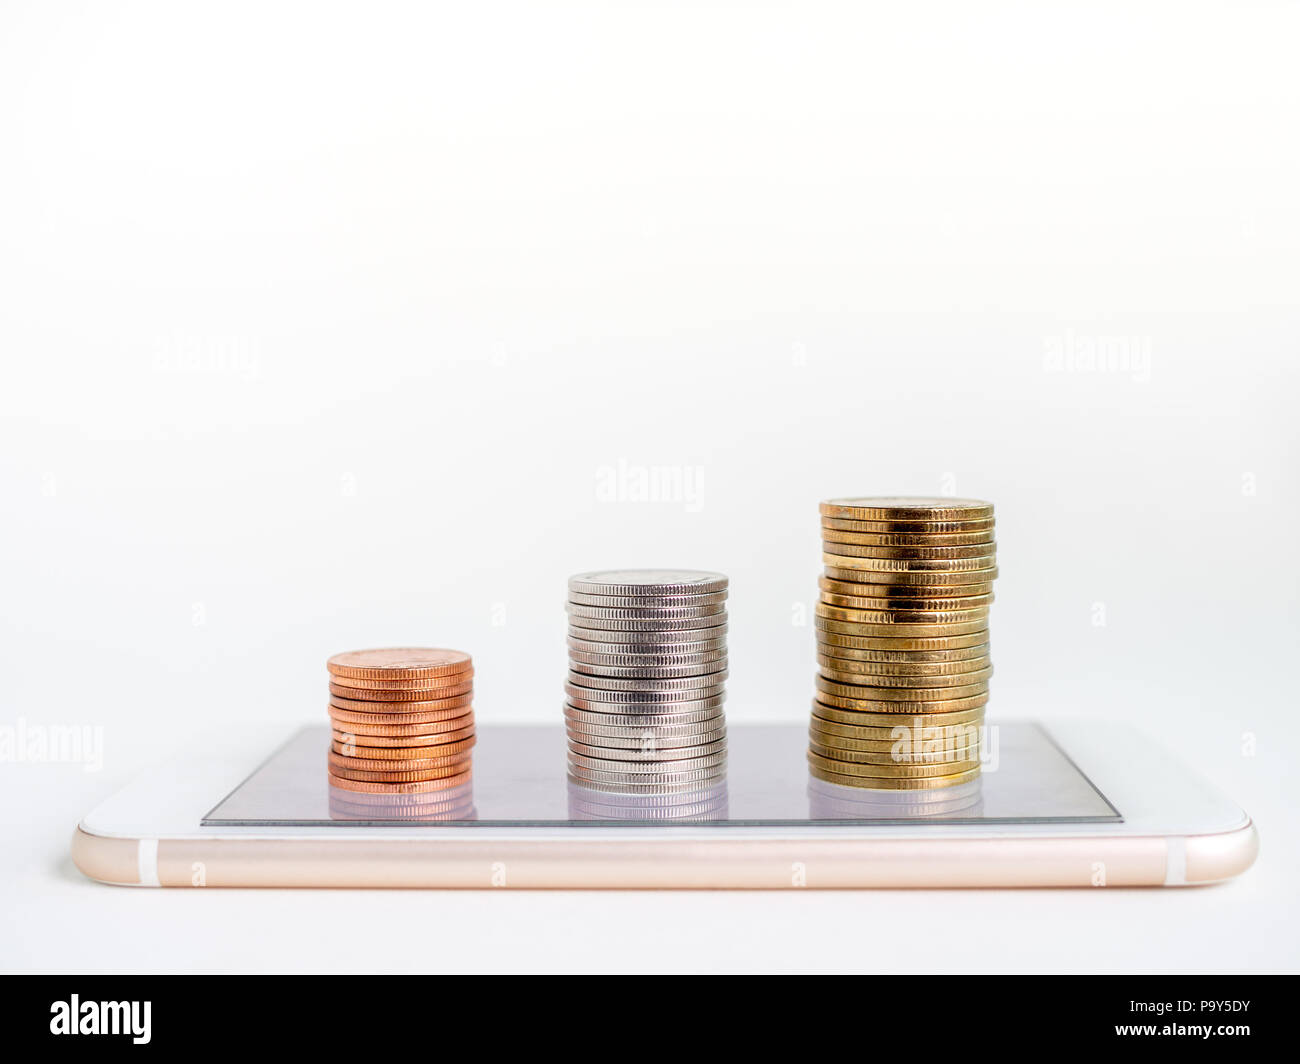 Making money online. Business financial online concept. money, stack of copper, silver and gold coins on mobile Phone isolated on white background wit - Stock Image